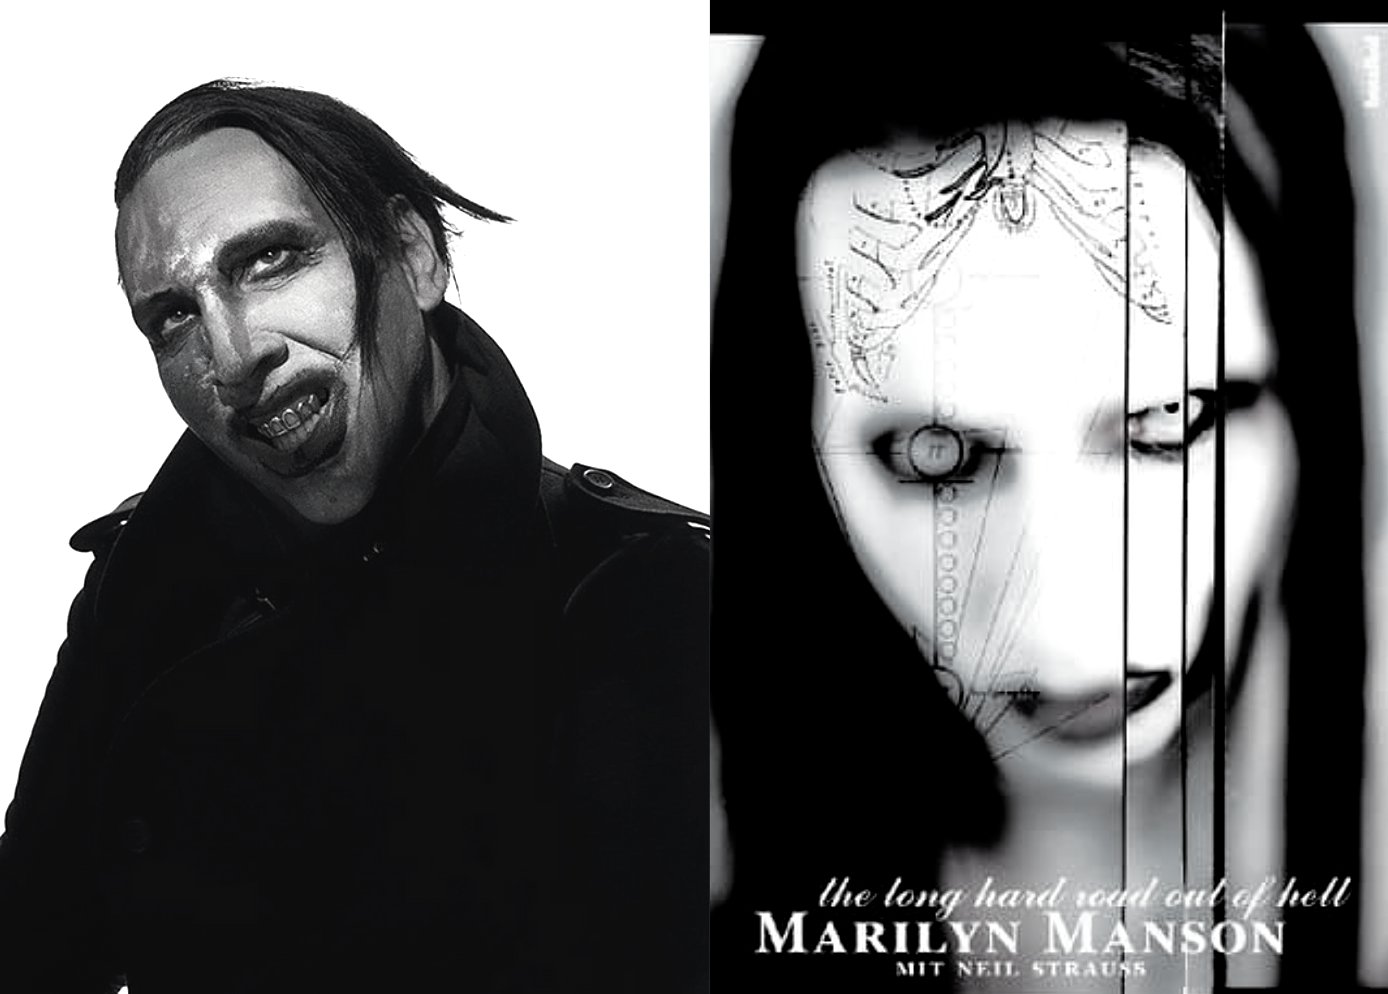 Marilyn Manson beside his autobiography The Long Hard Road Out of Hell.